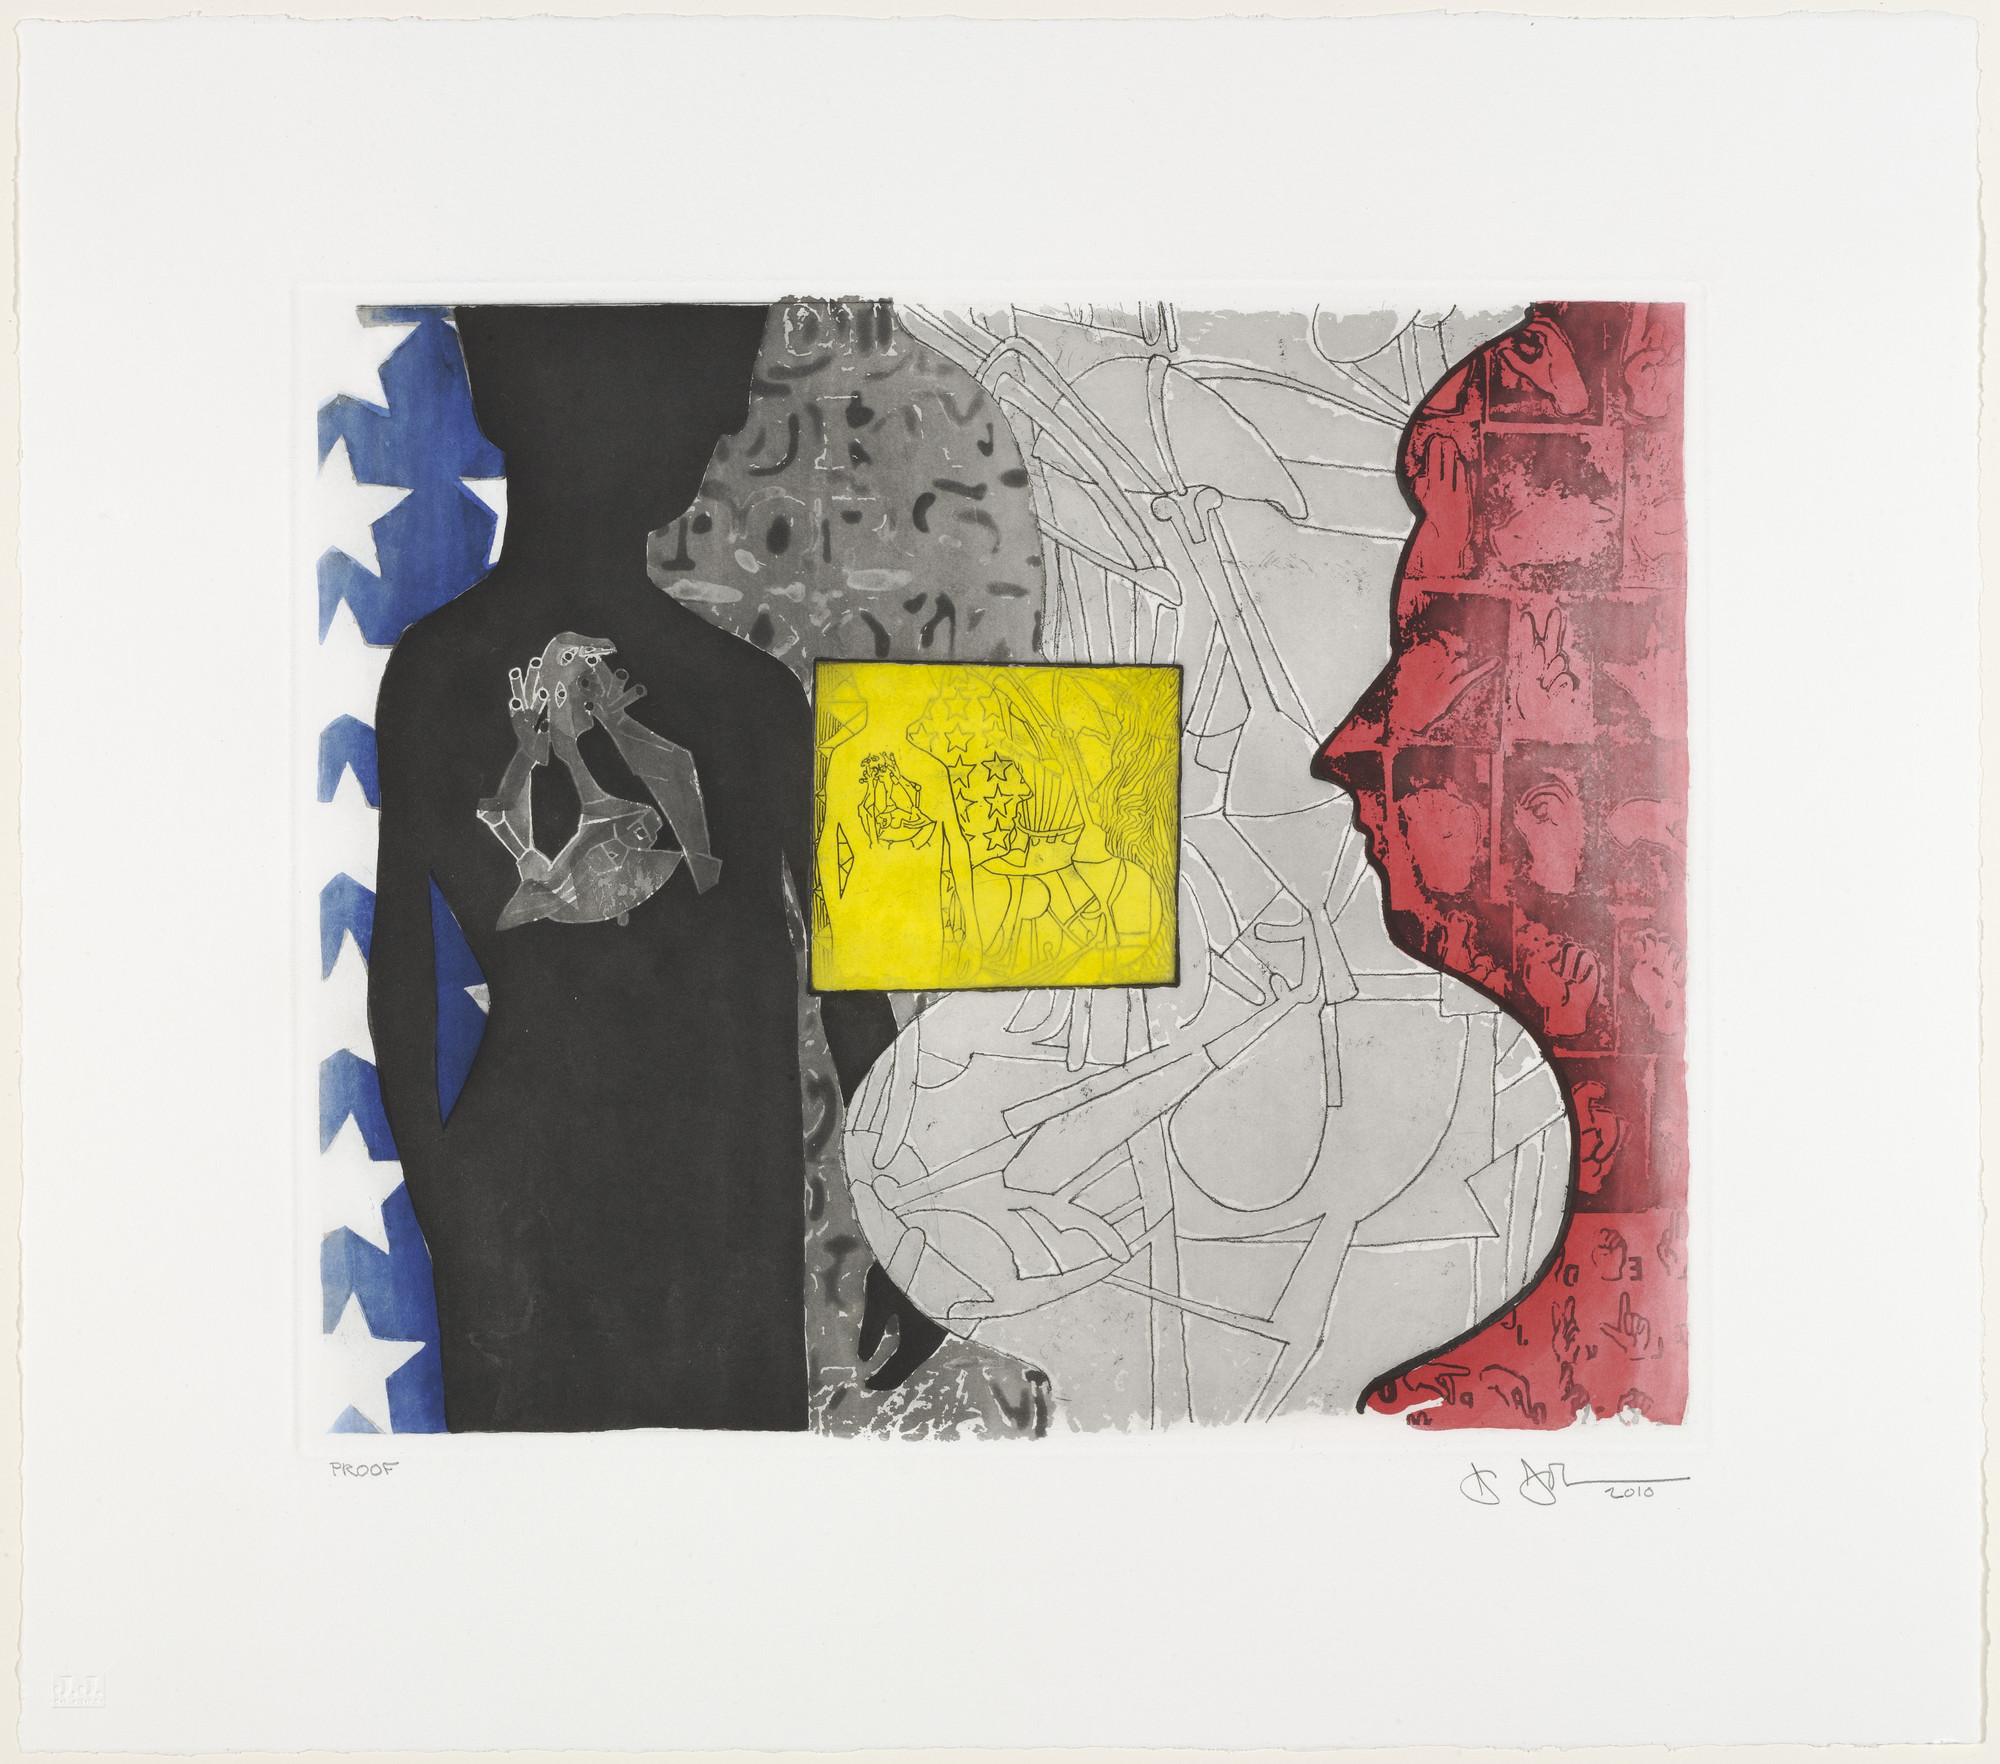 Jasper Johns. Untitled. 2010